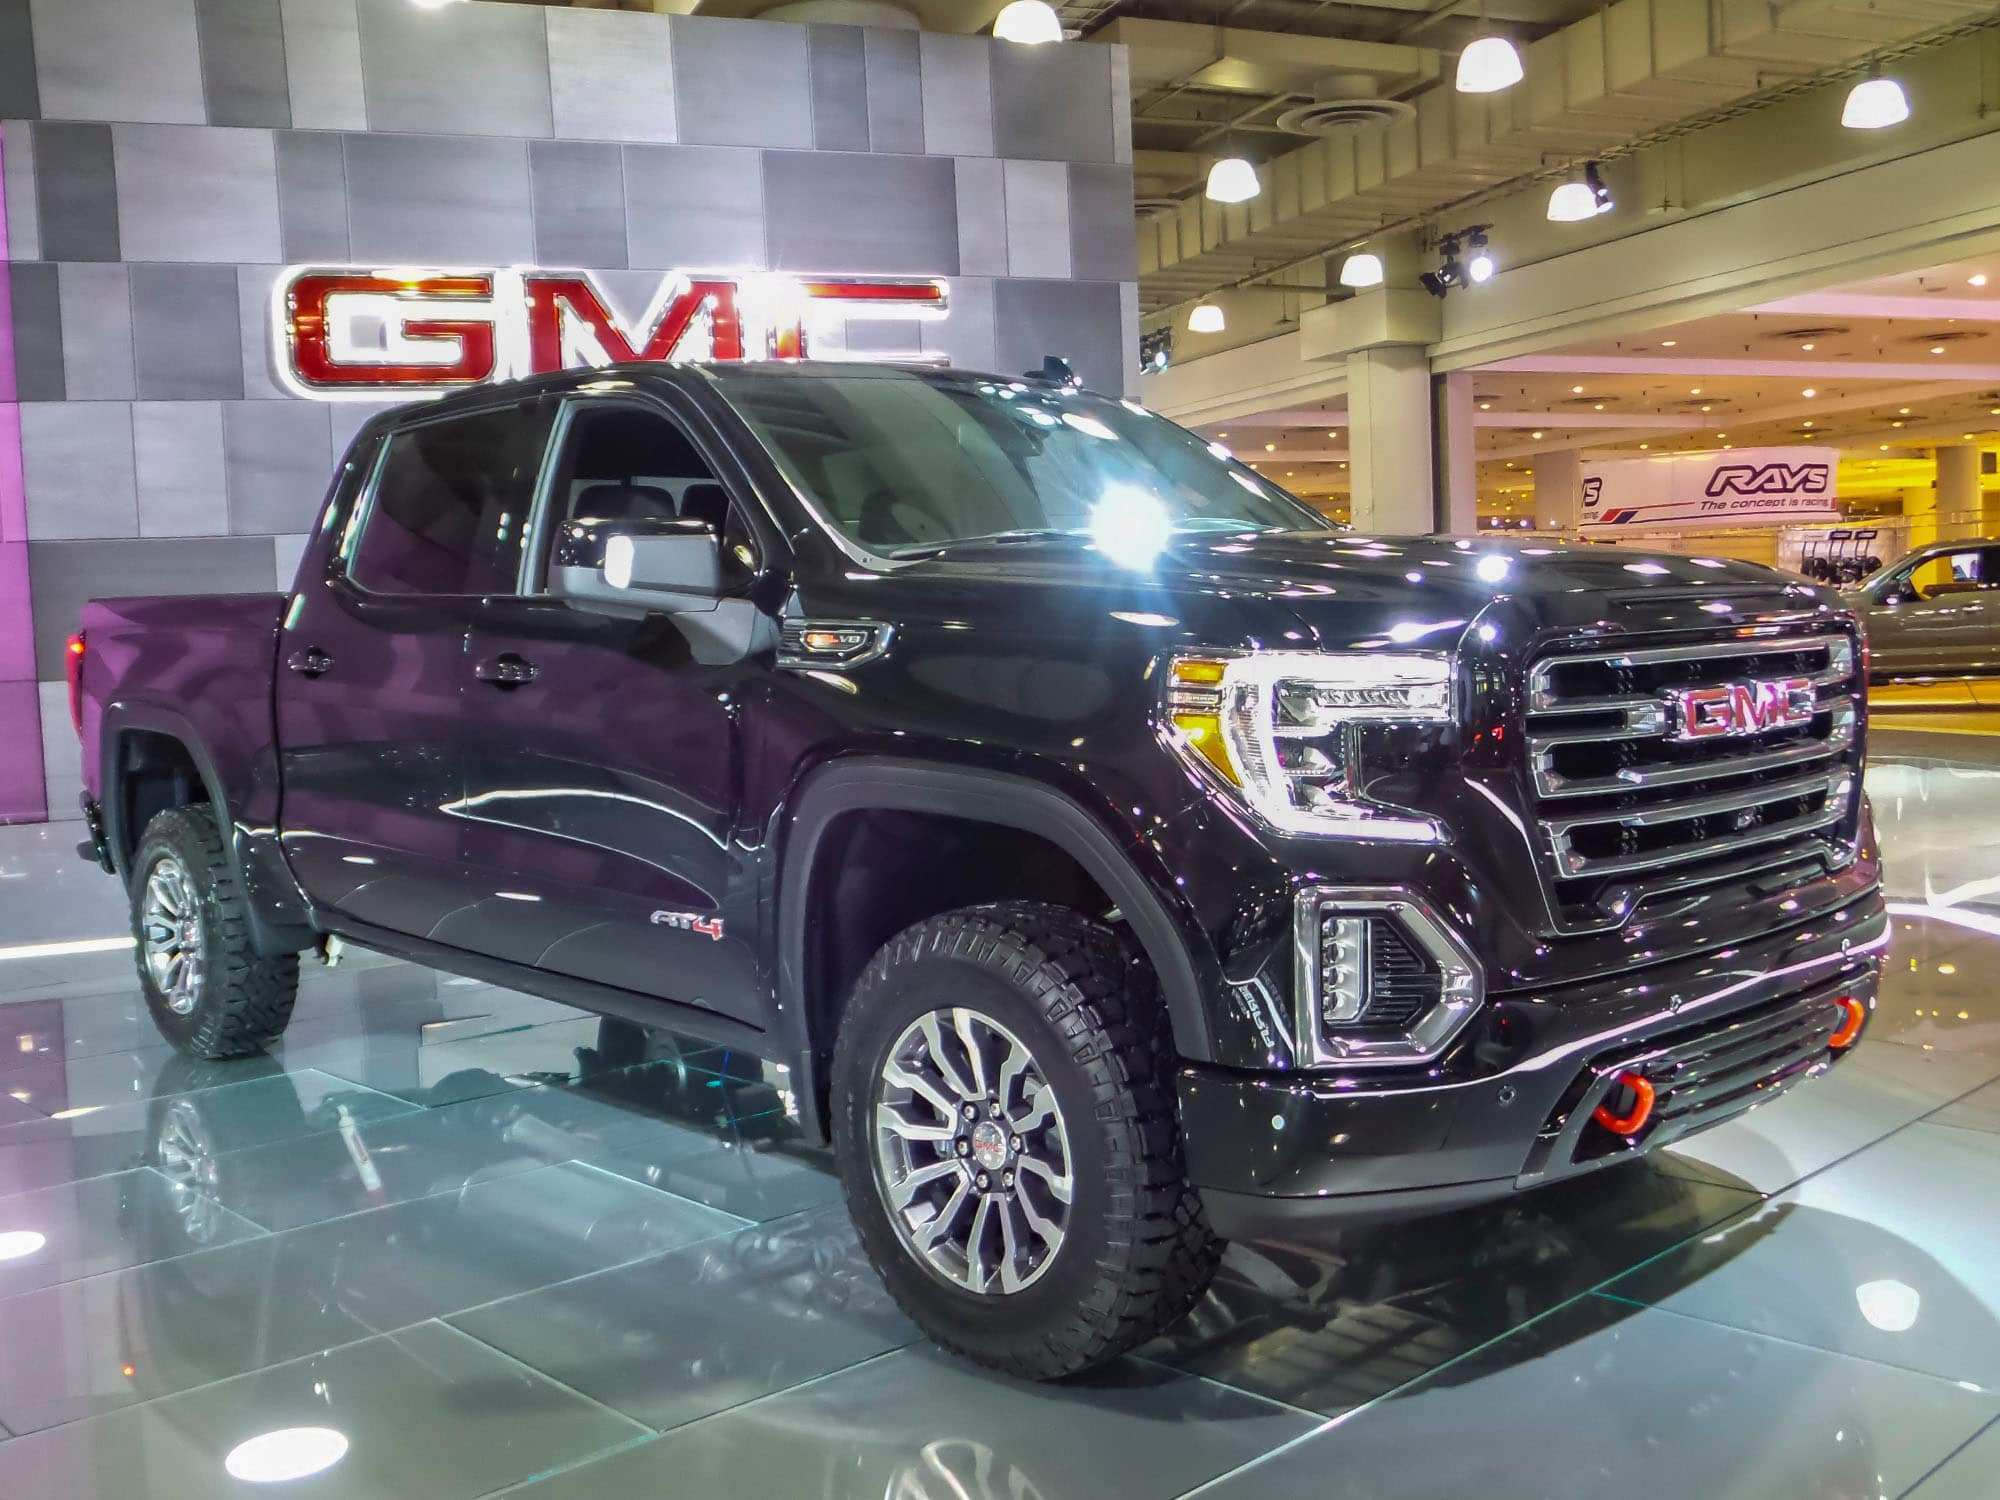 97 Concept of 2019 Gmc Inline 6 Diesel Rumors by 2019 Gmc Inline 6 Diesel